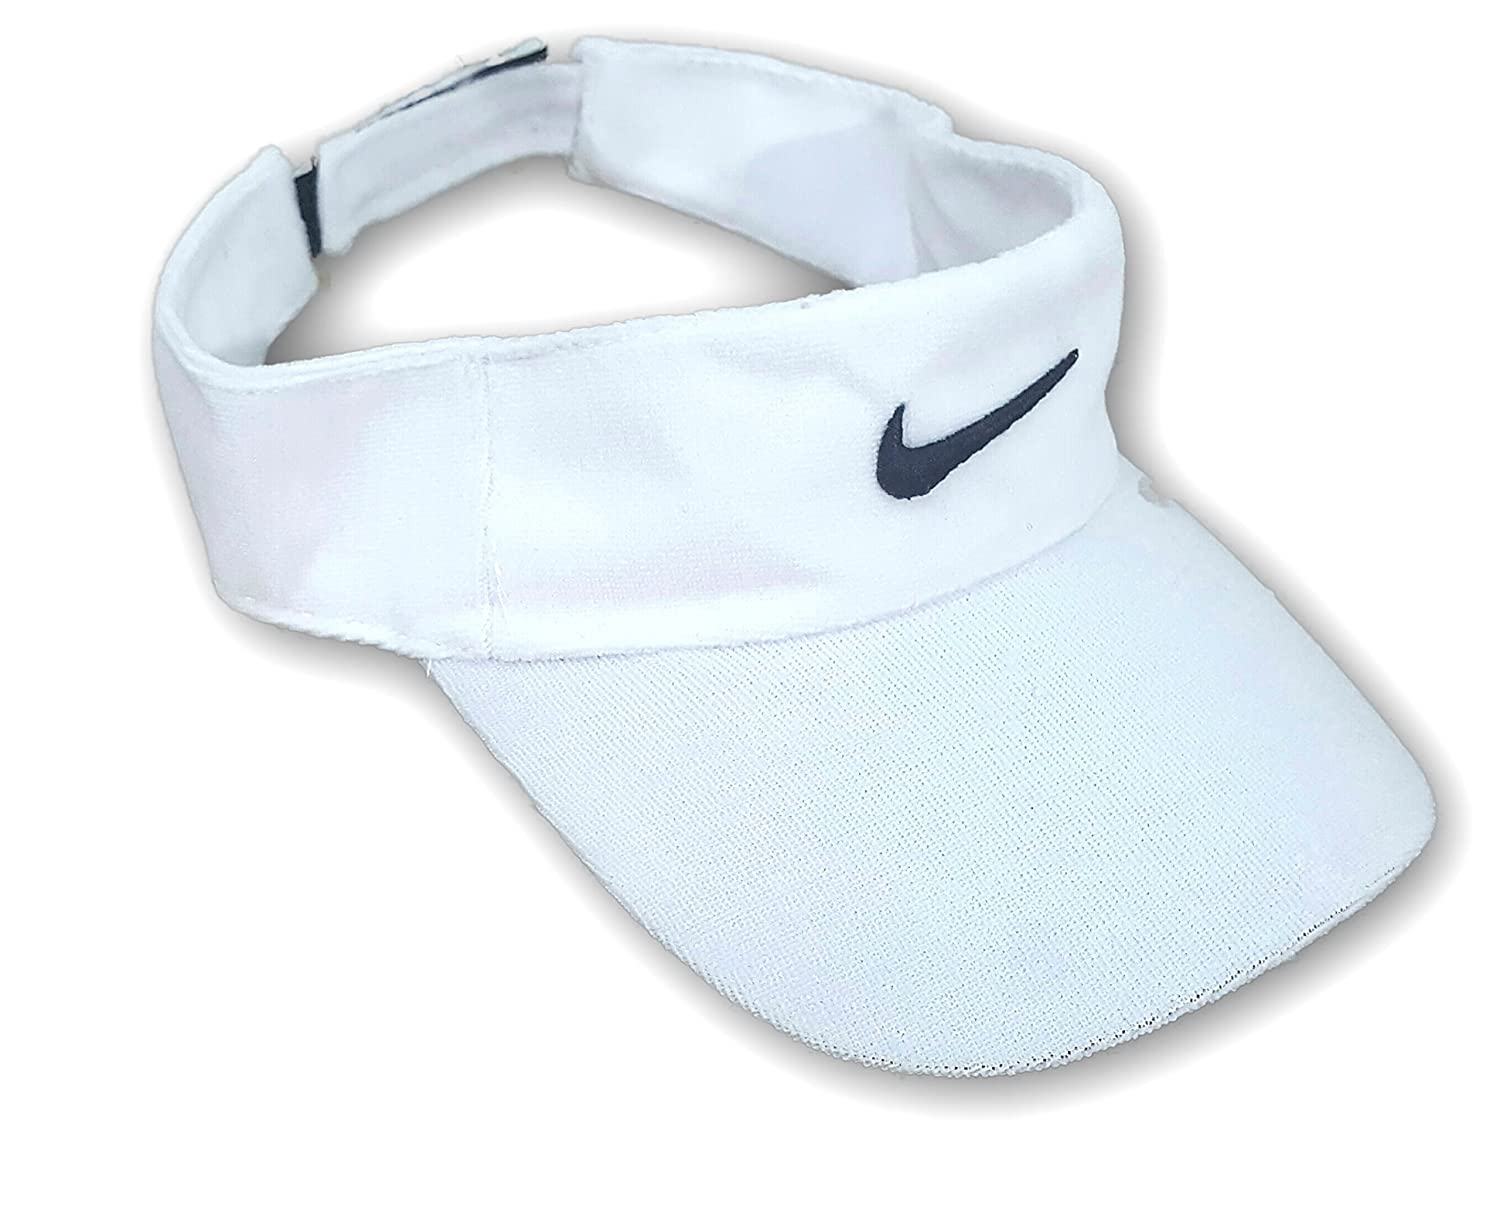 Sports Heritage Half Cap For Men   Women (white)  Amazon.in  Clothing    Accessories 33991ab89be